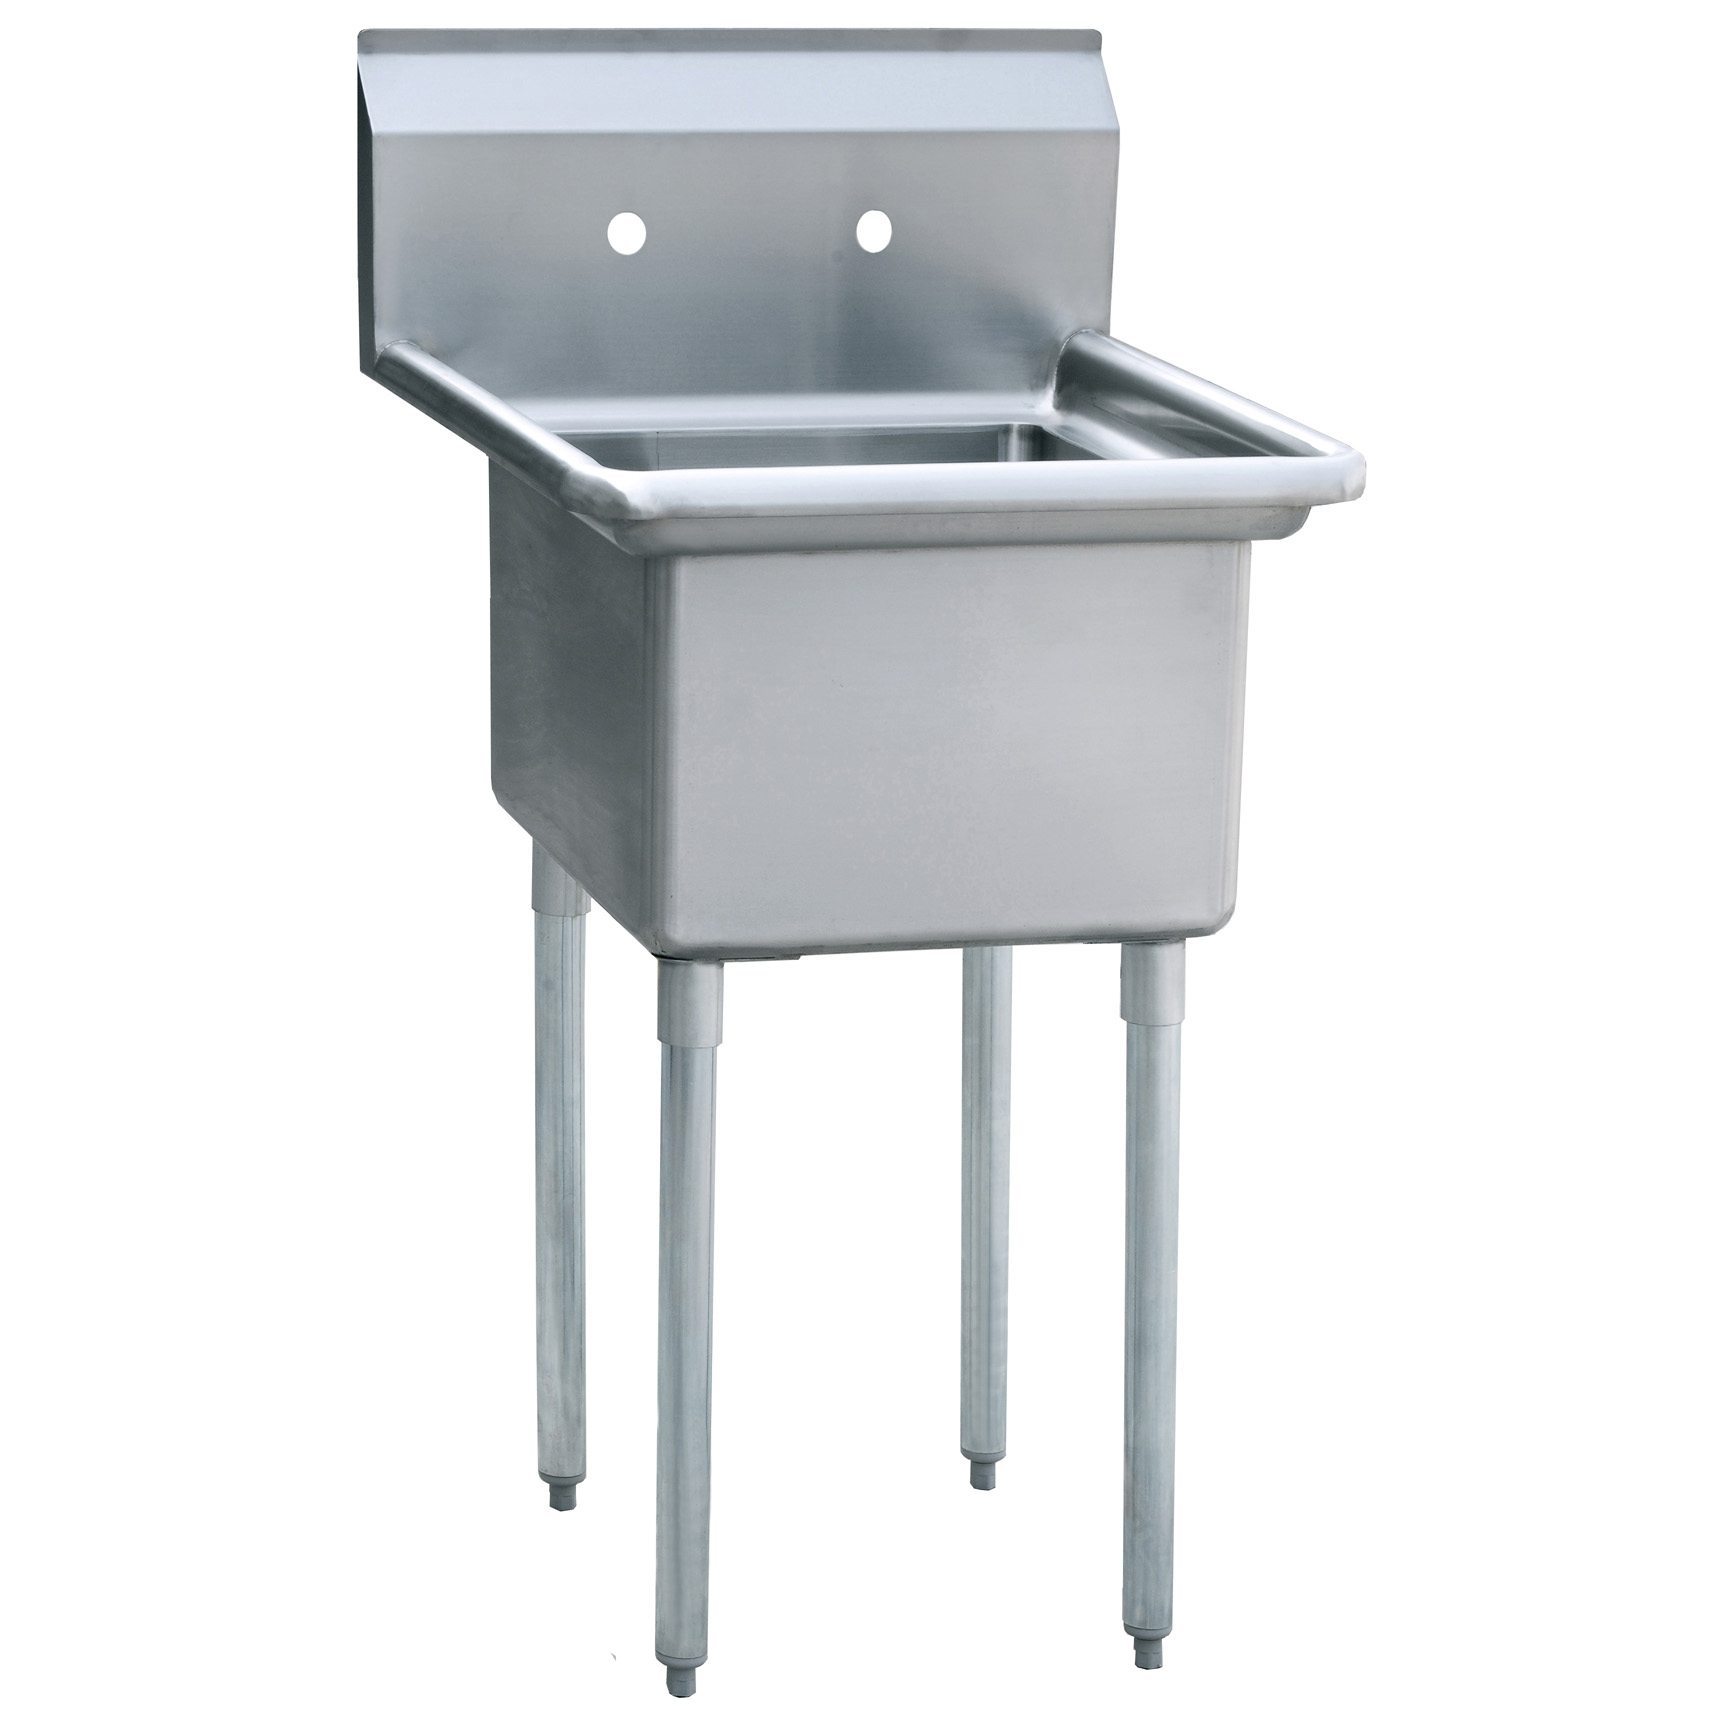 Atosa USA MRSA-1-N sink, (1) one compartment